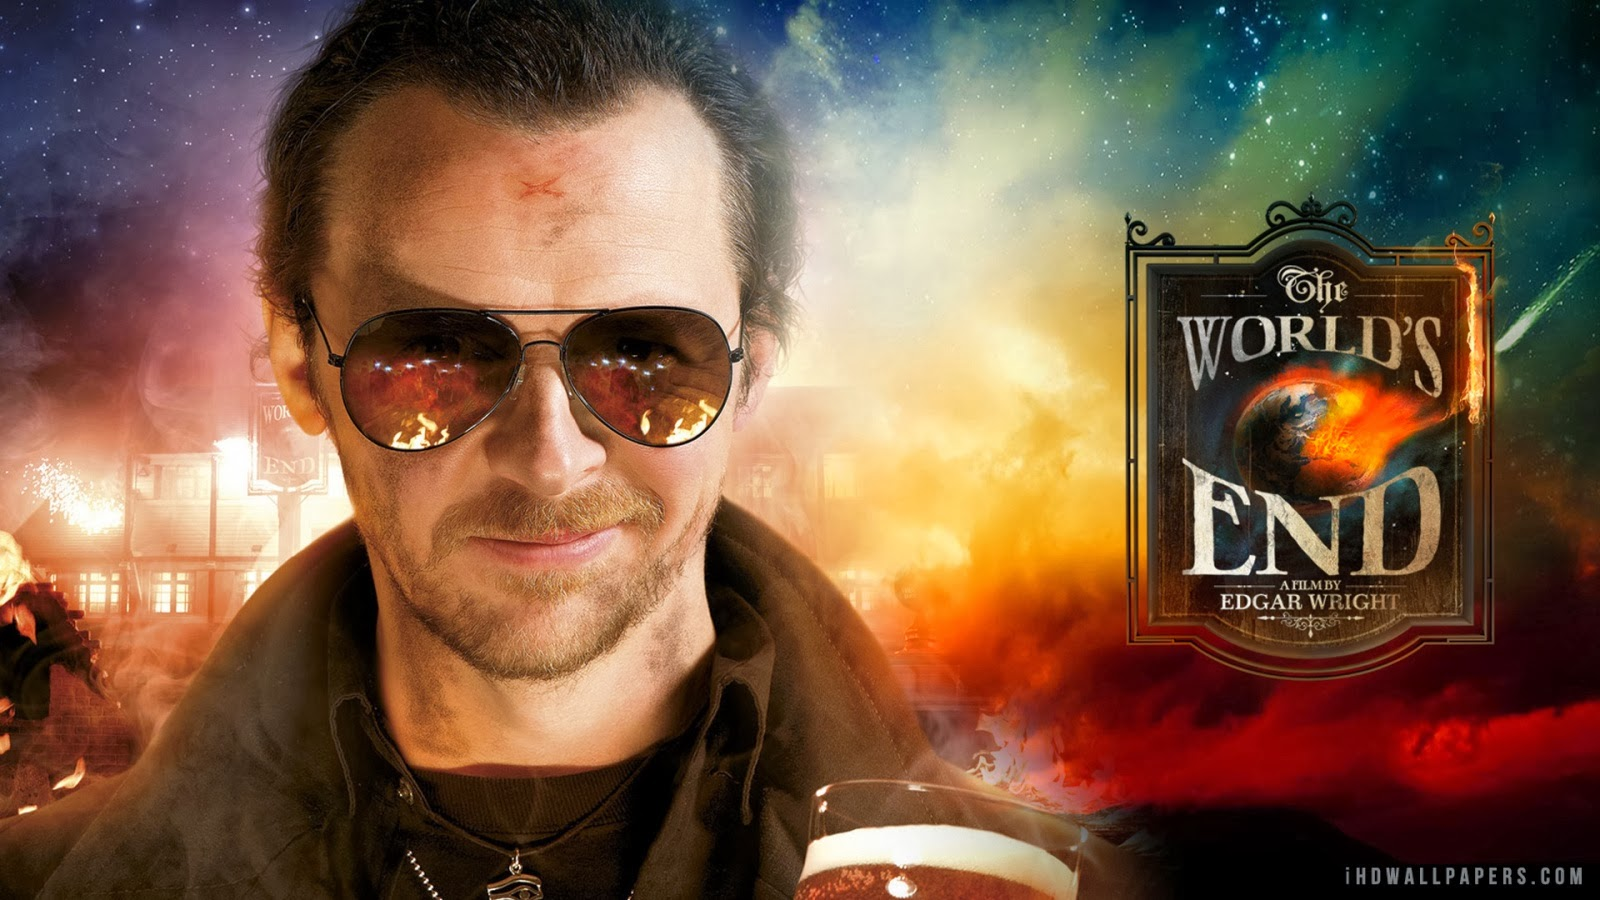 the worlds end full movie download